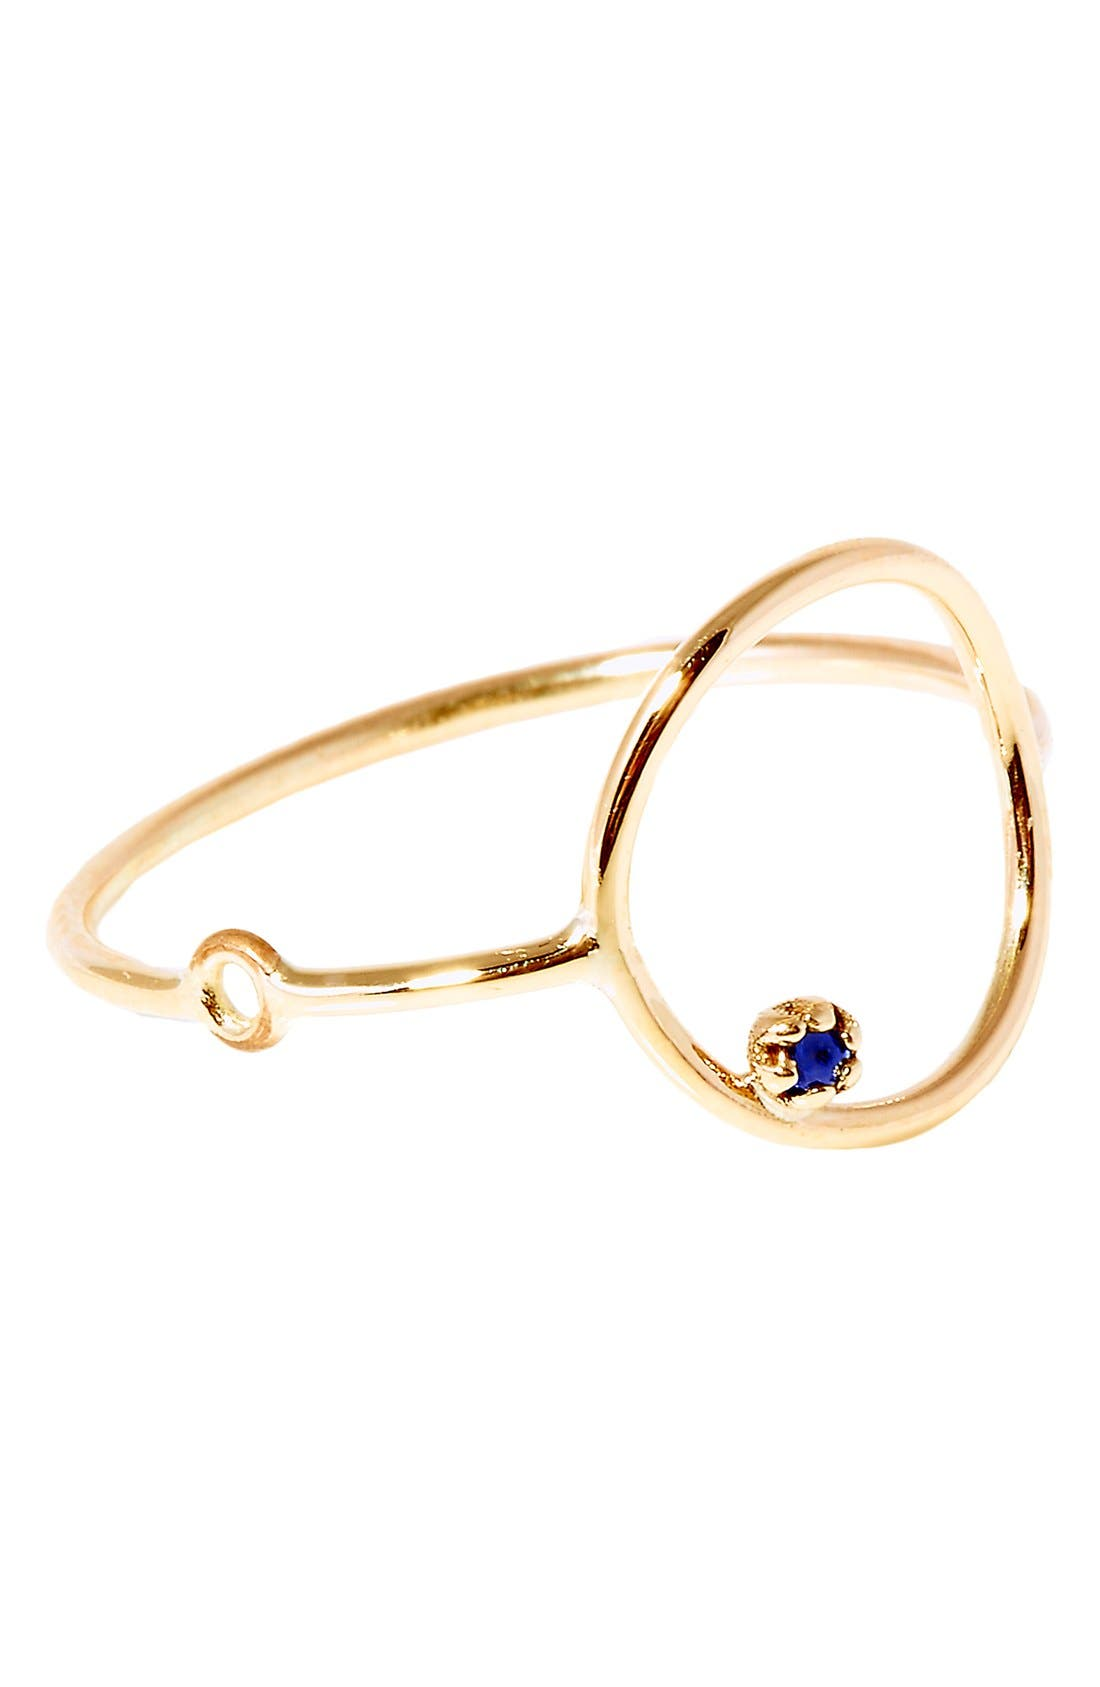 'Stone Bubble' Gold & Sapphire Ring,                             Main thumbnail 1, color,                             Yellow Gold